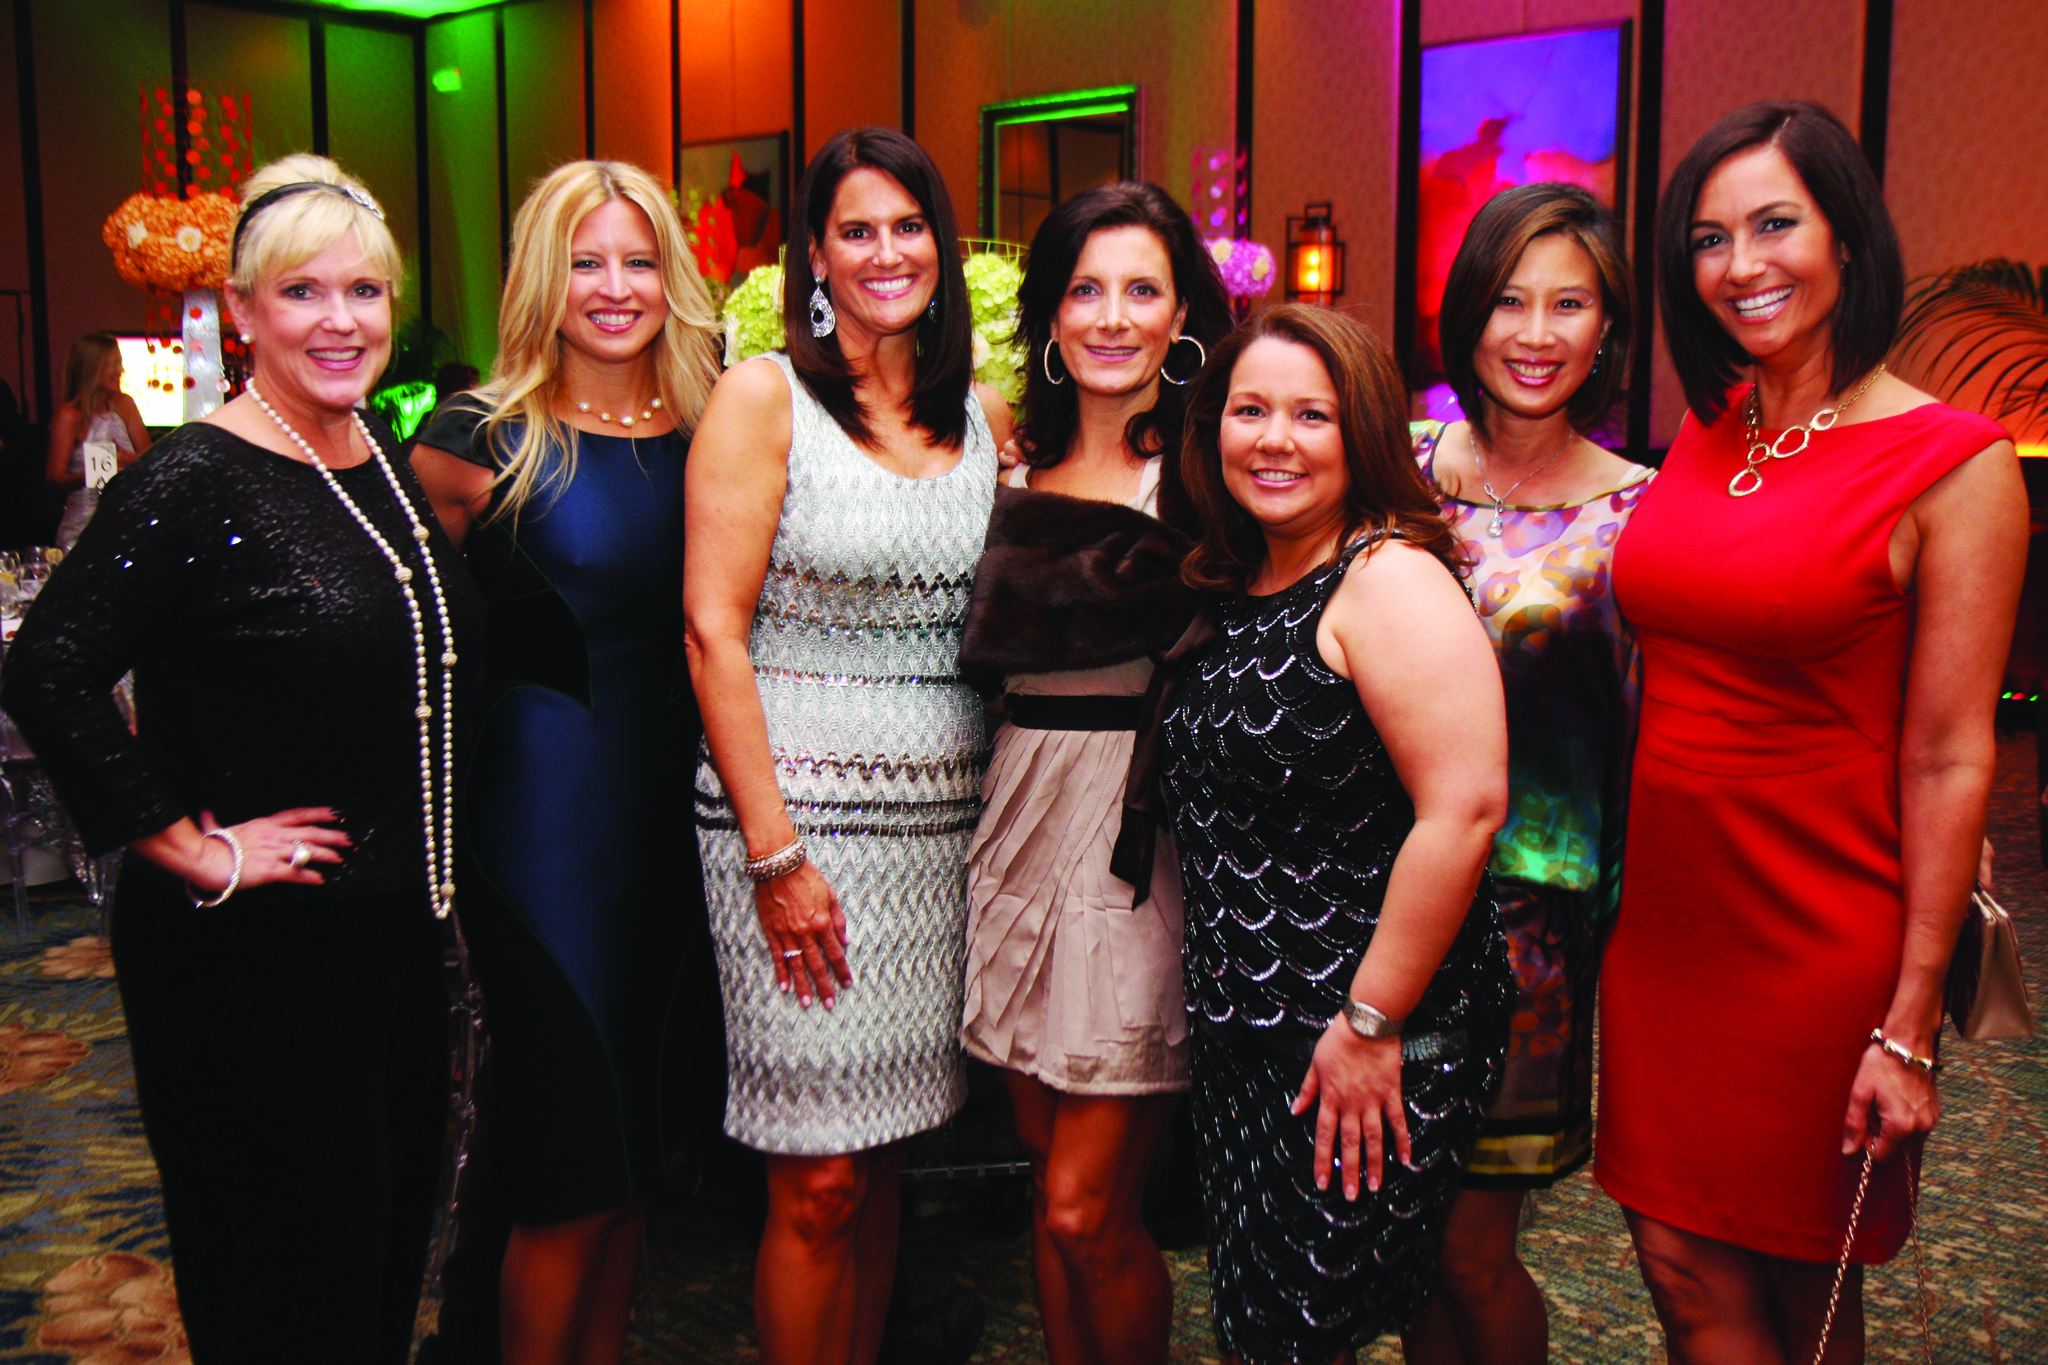 Society Scene photos - Nancy Dockerty, left, Kristen Ross, Kathy Adkins, Dorothy MacDiarmid, Fabiola Hooker, Debbie Faris and Melissa Whelchel looked fashionable at the Florence Fuller Child Development Centers